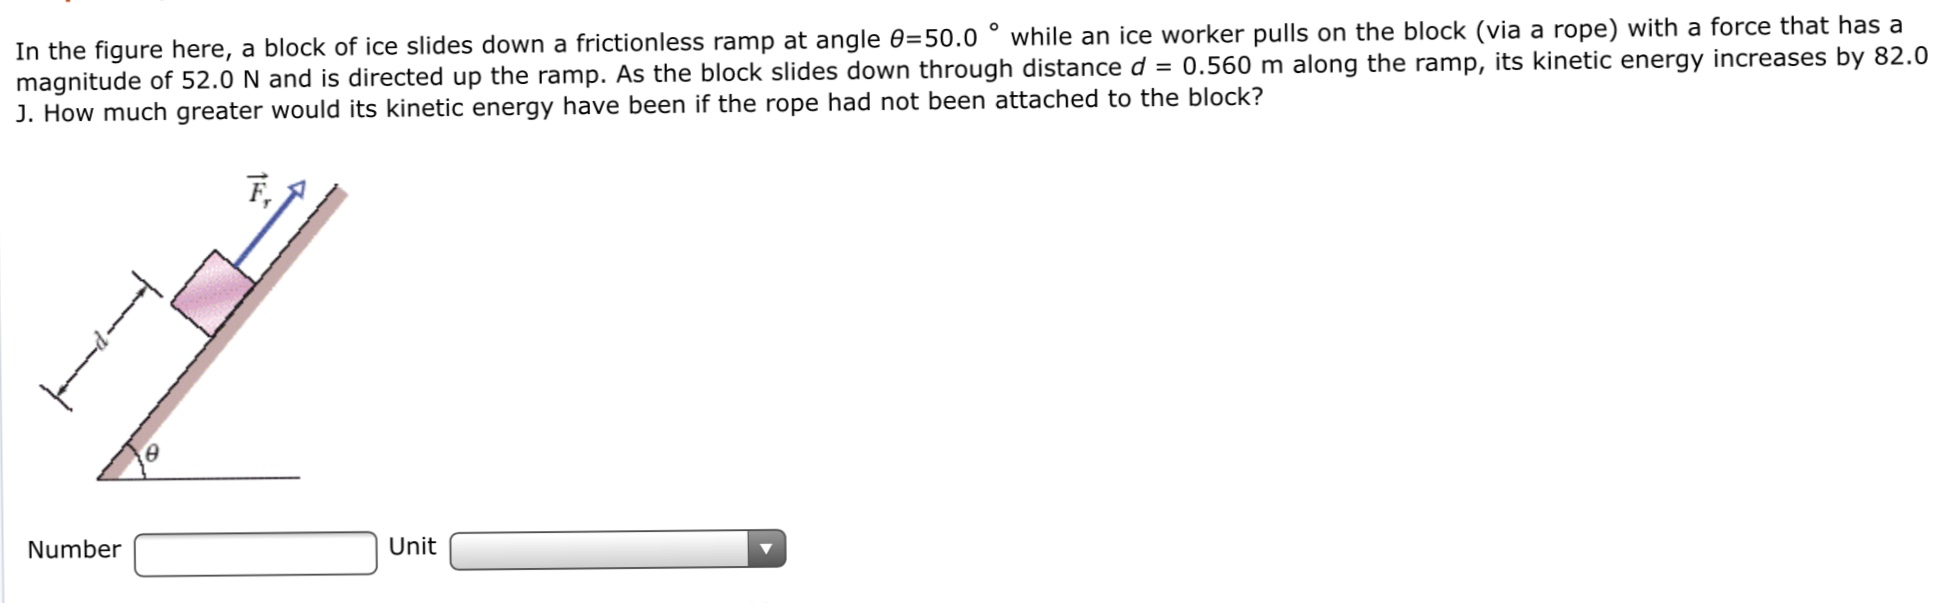 In the figure here, a block of ice slides down a frictionless ramp at angle 0=50.0 ° while an ice worker pulls on the block (via a rope) with a force that has a magnitude of 52.0 N and is directed up the ramp. As the block slides down through distance d = 0.560 m along the ramp, its kinetic energy increases by 82.0 J. How much greater would its kinetic energy have been if the rope had not been attached to the block? F, Number Unit